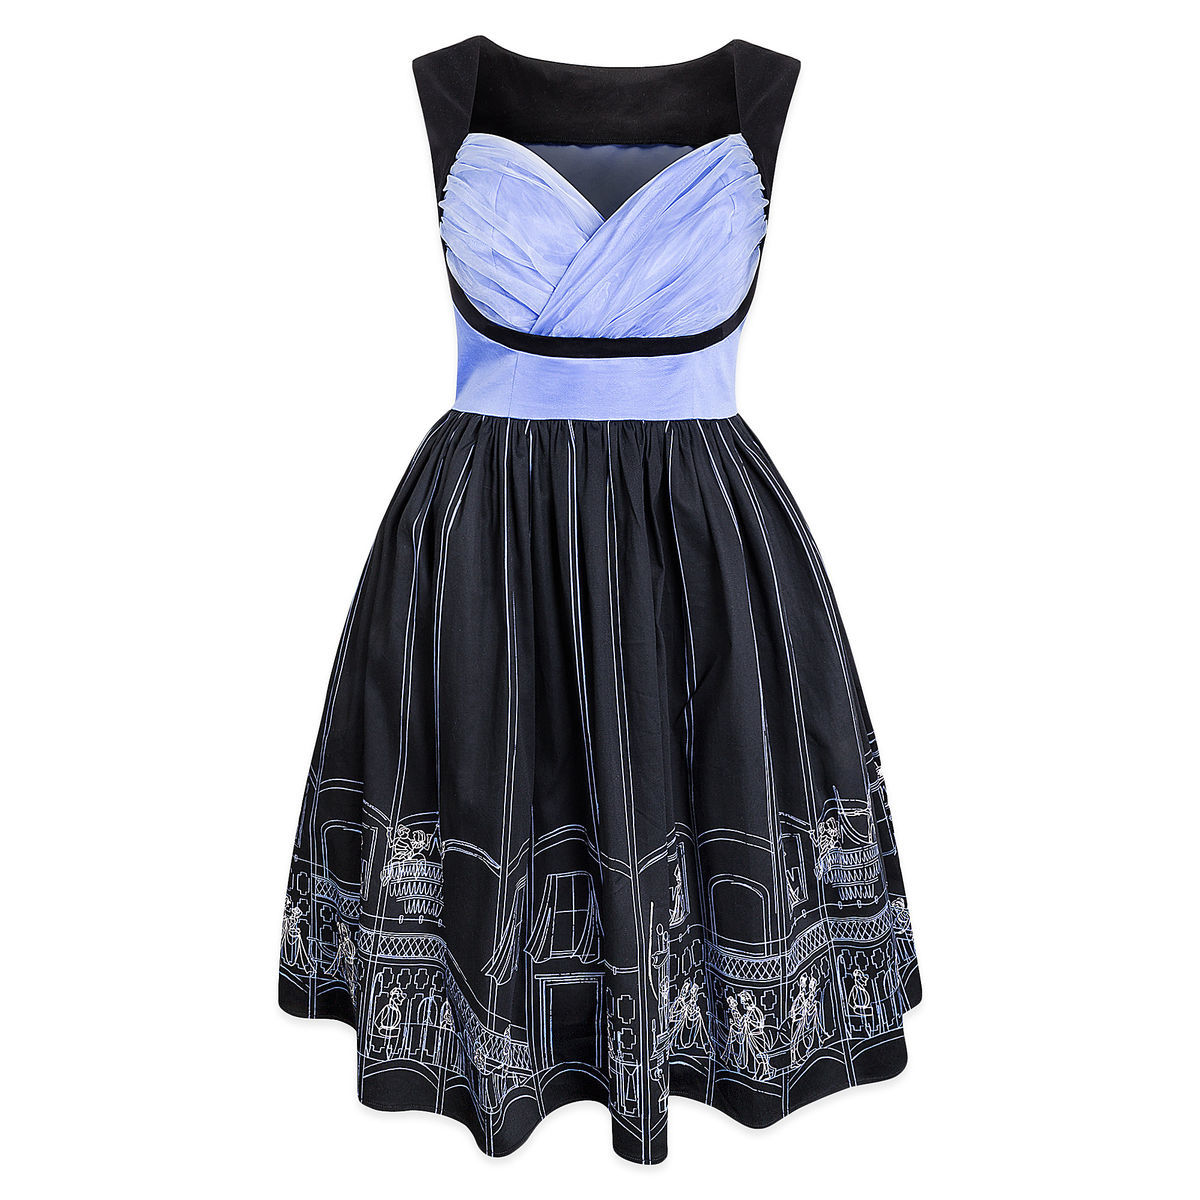 Haunted Mansion Ballroom Dress for Women by Her Universe | shopDisney